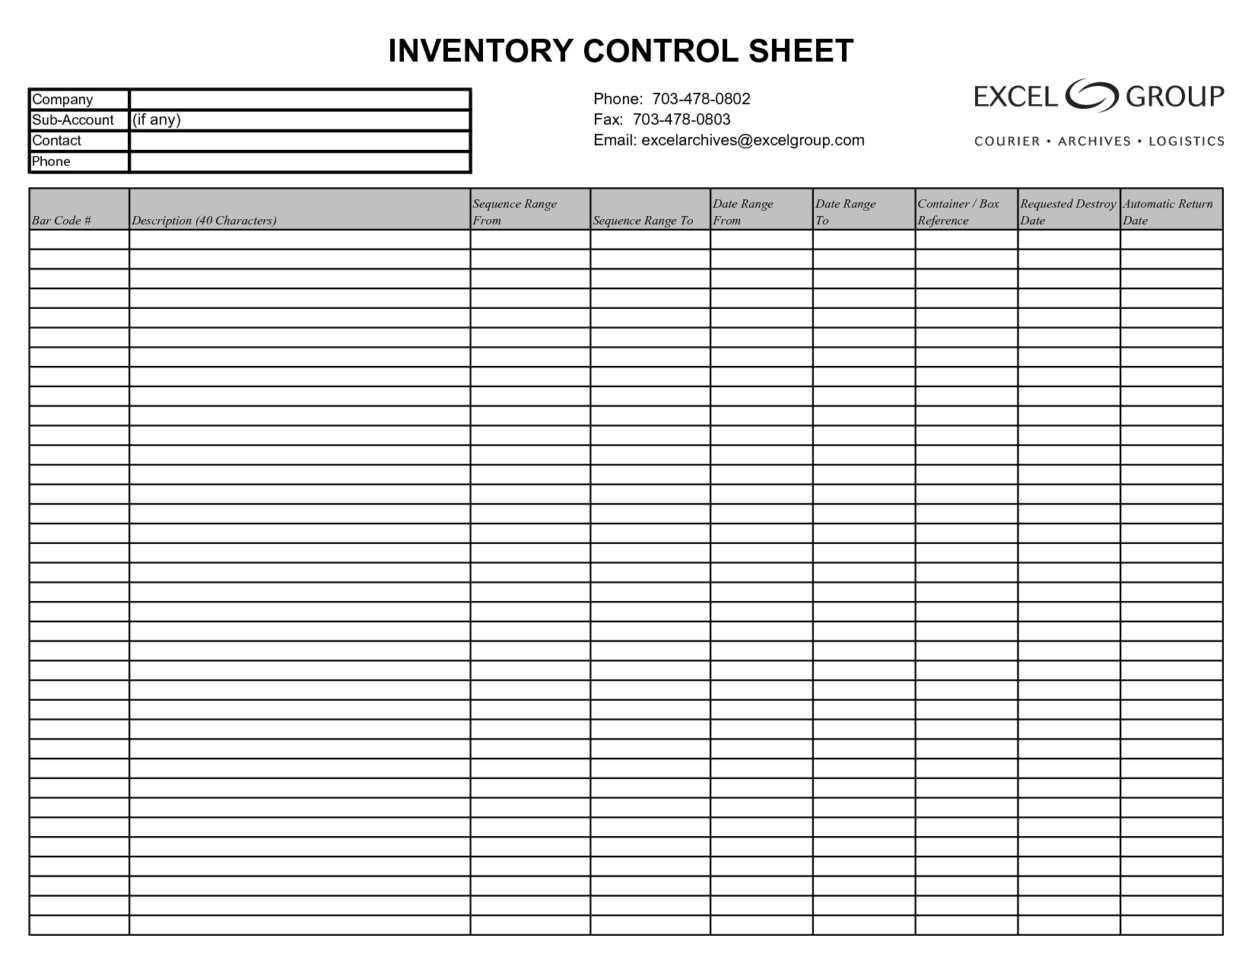 Inventory Spreadsheet Template Excel Product Tracking | My And Inventory Tracking Spreadsheet Template